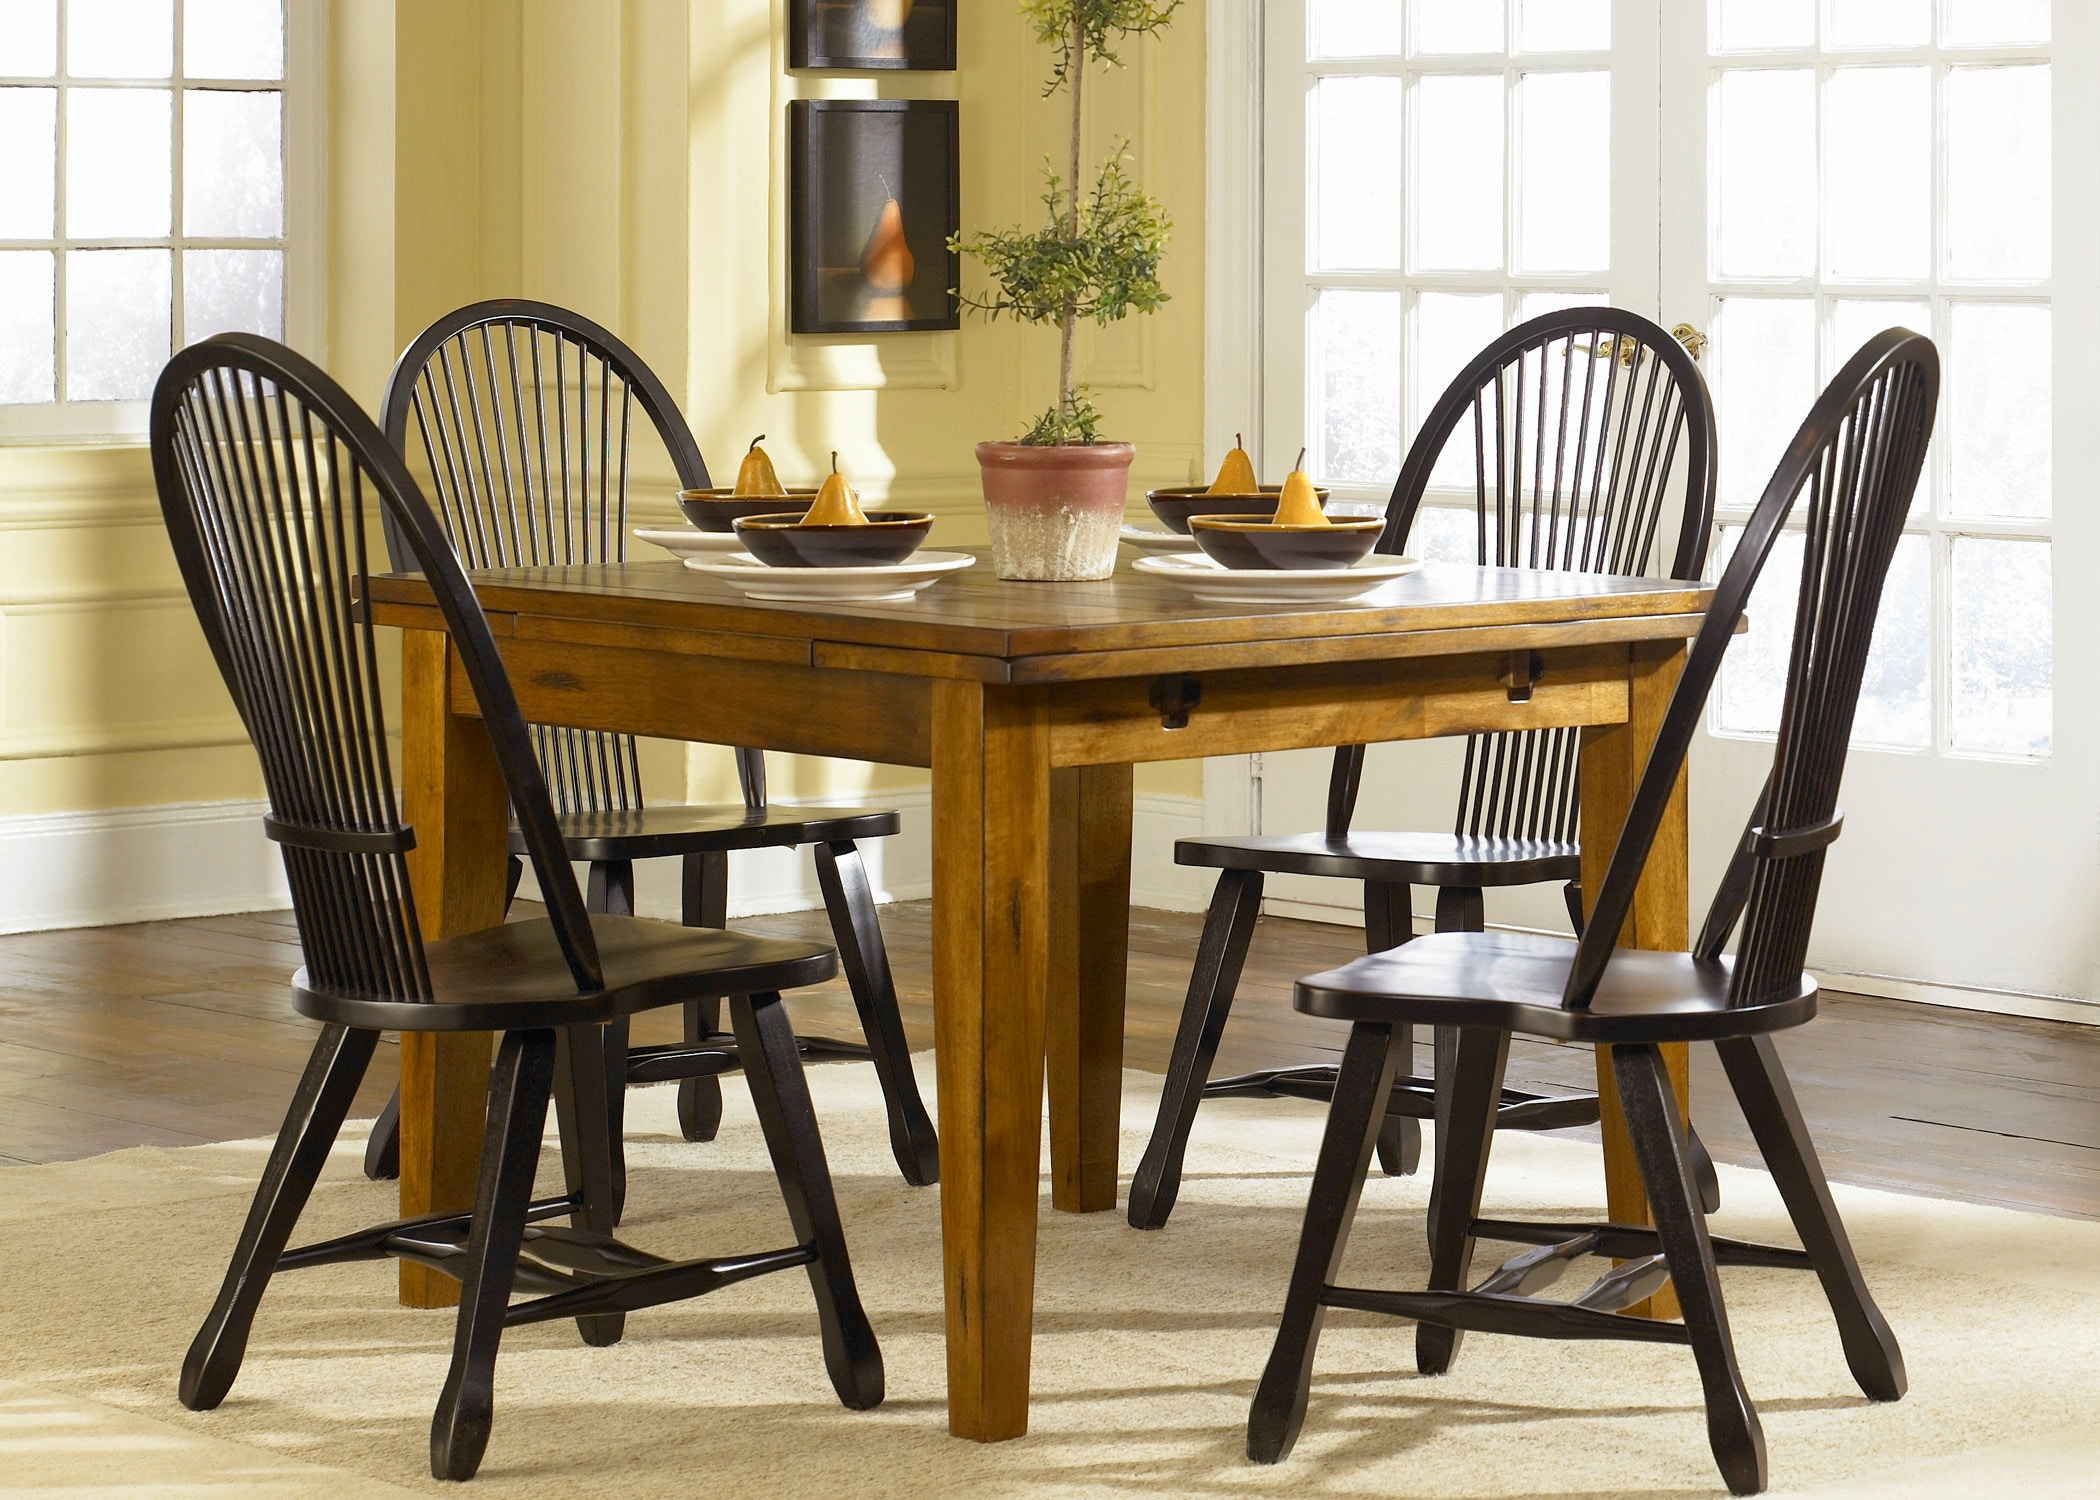 Liberty Furniture Dining Room Retractable Leg Table Oak  : 17 t3868 from www.arthurfschultz.com size 1024 x 768 jpeg 107kB